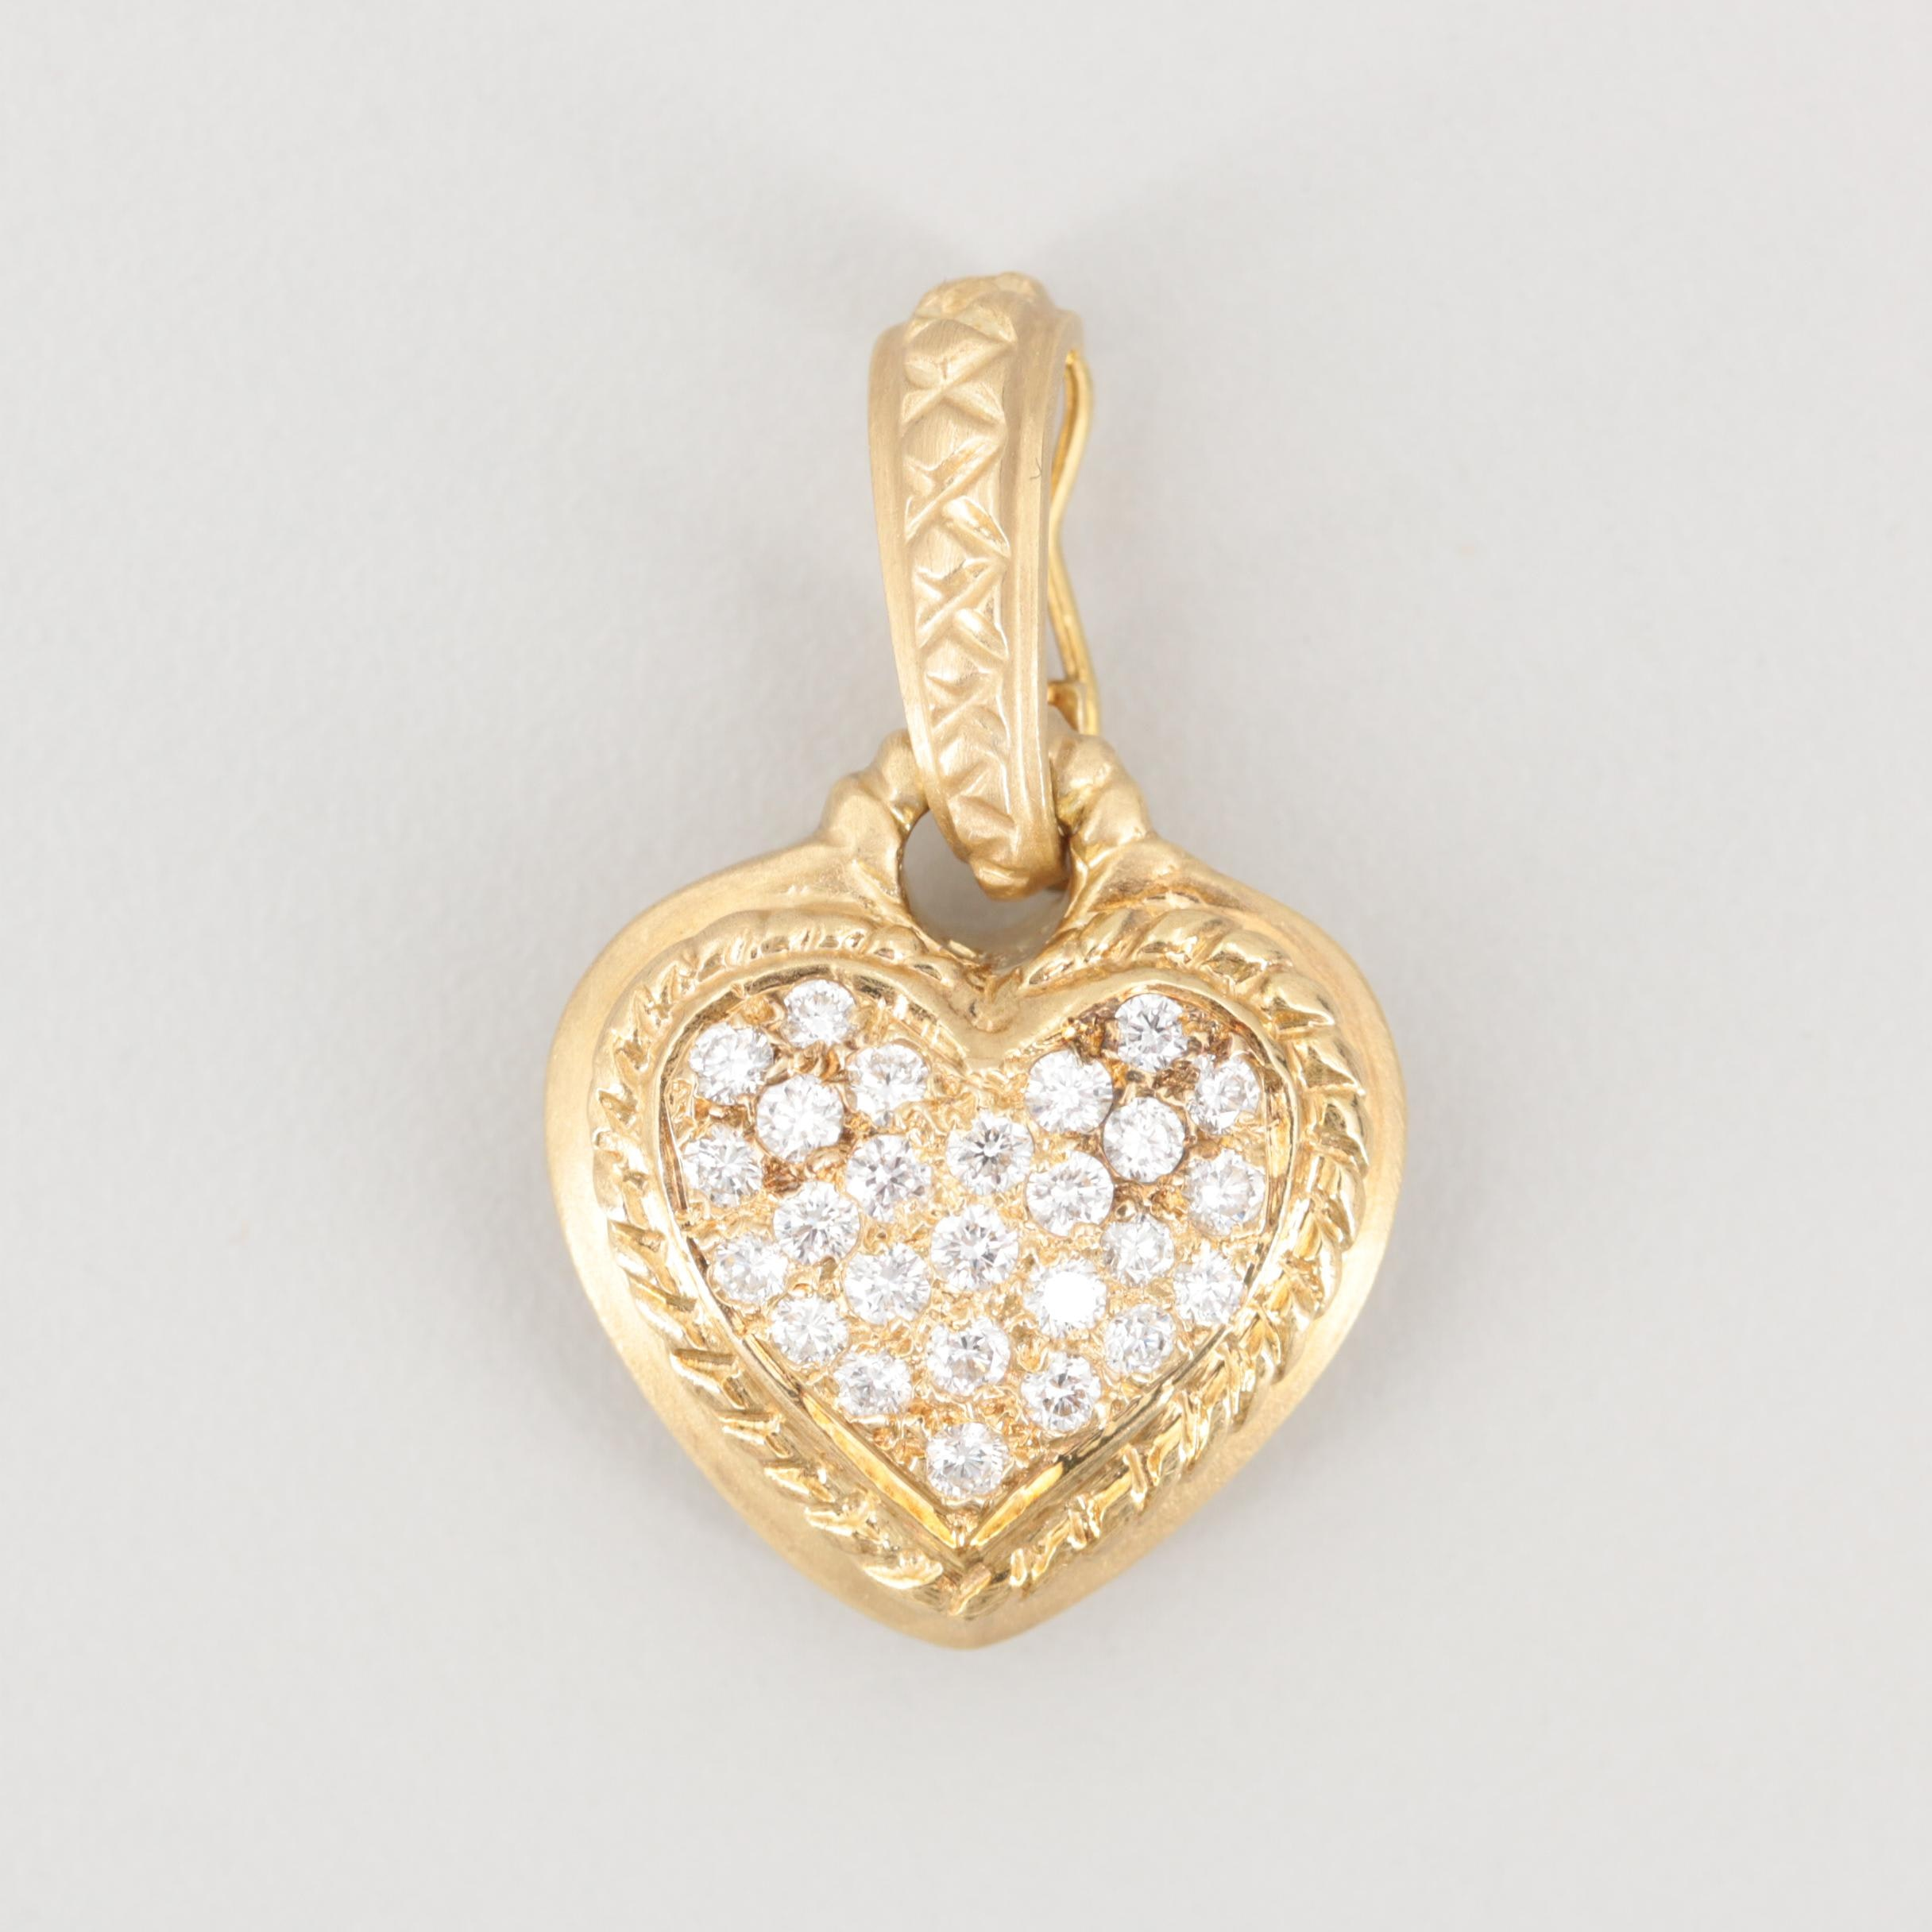 14K Yellow Gold Diamond Heart Enhancer Pendant